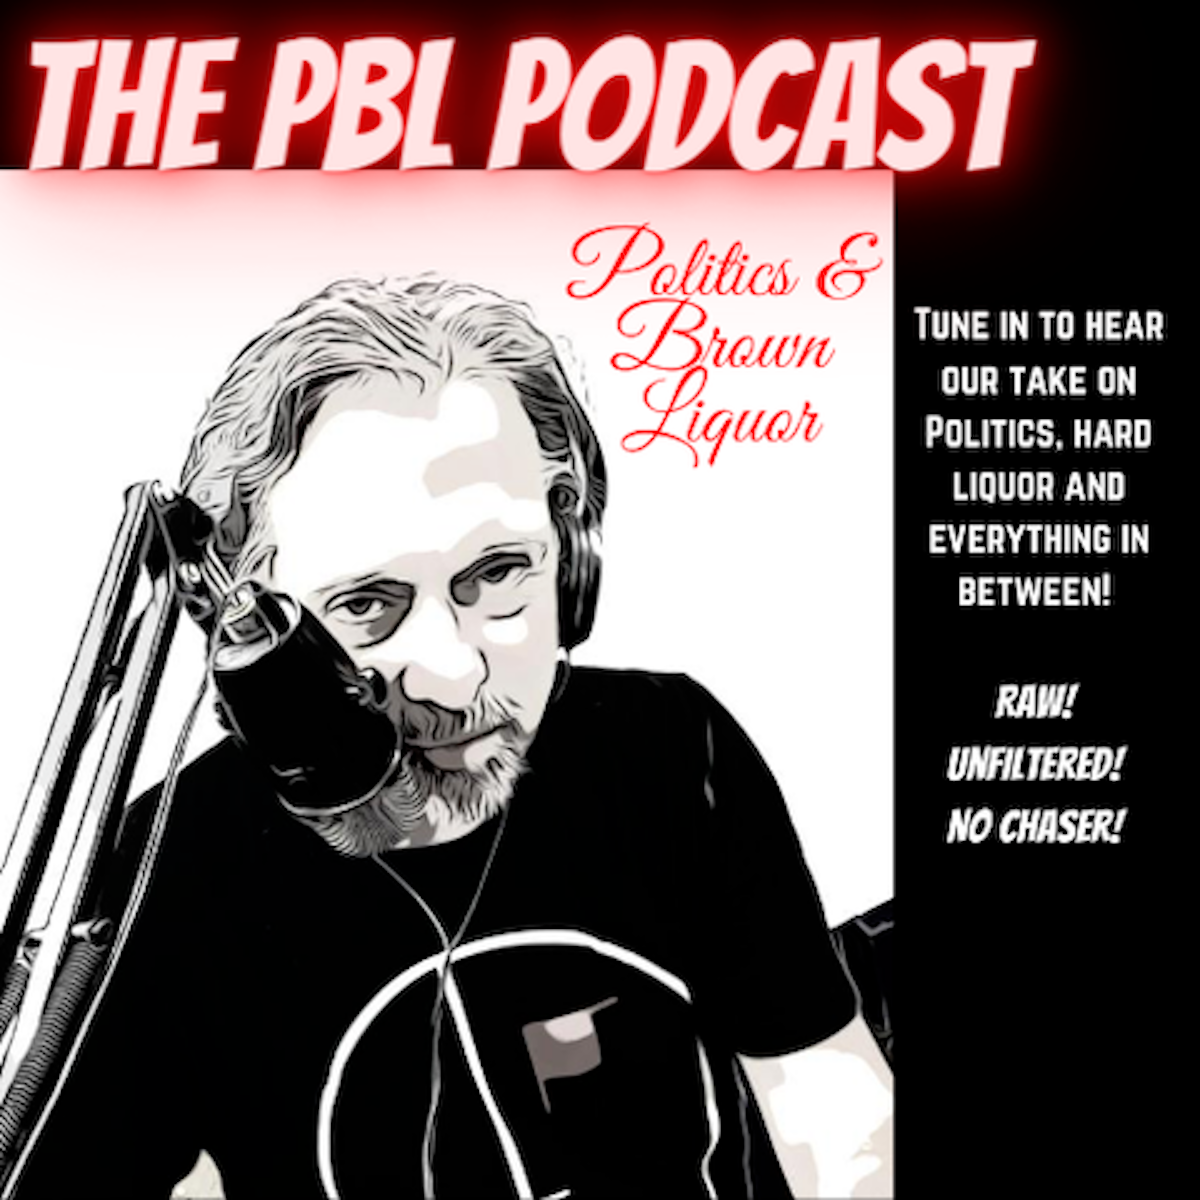 Politics and Brown Liquor - The PBL Podcast